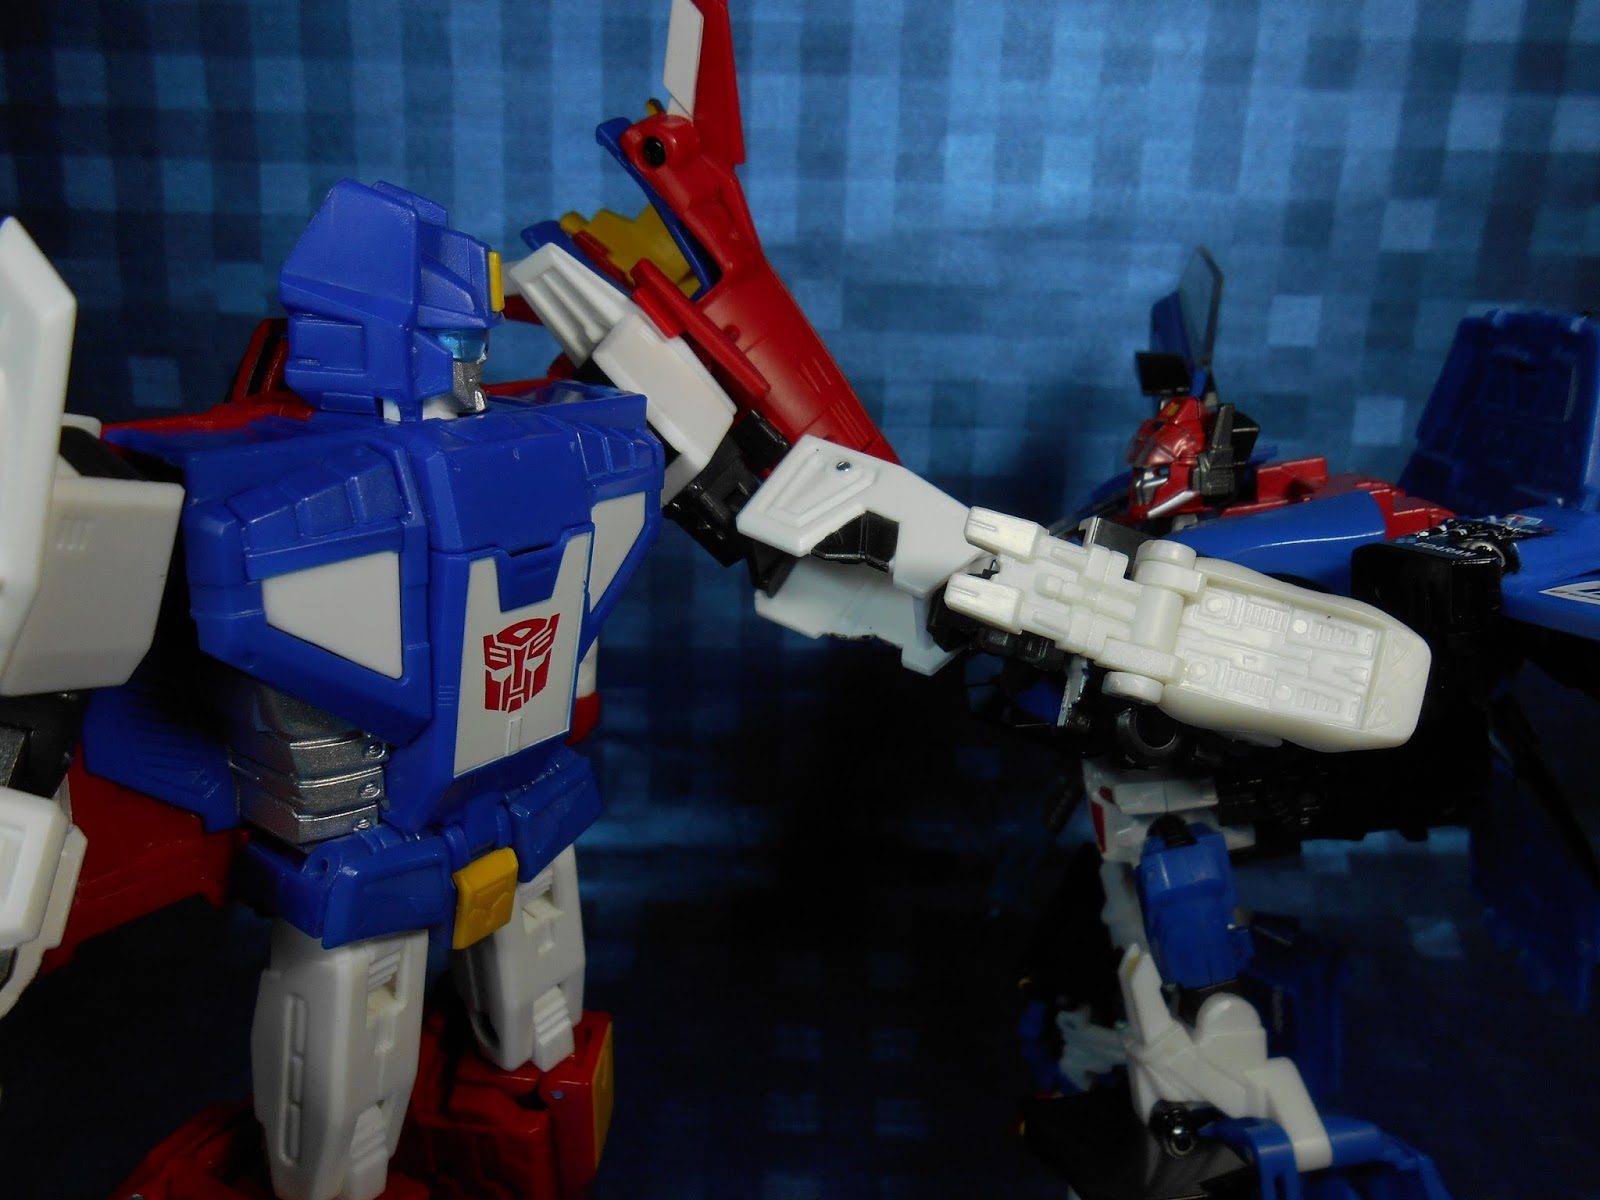 http://murakami-night.blogspot.com/2015/04/takara-masterpiece-24-part1-saber-review.html